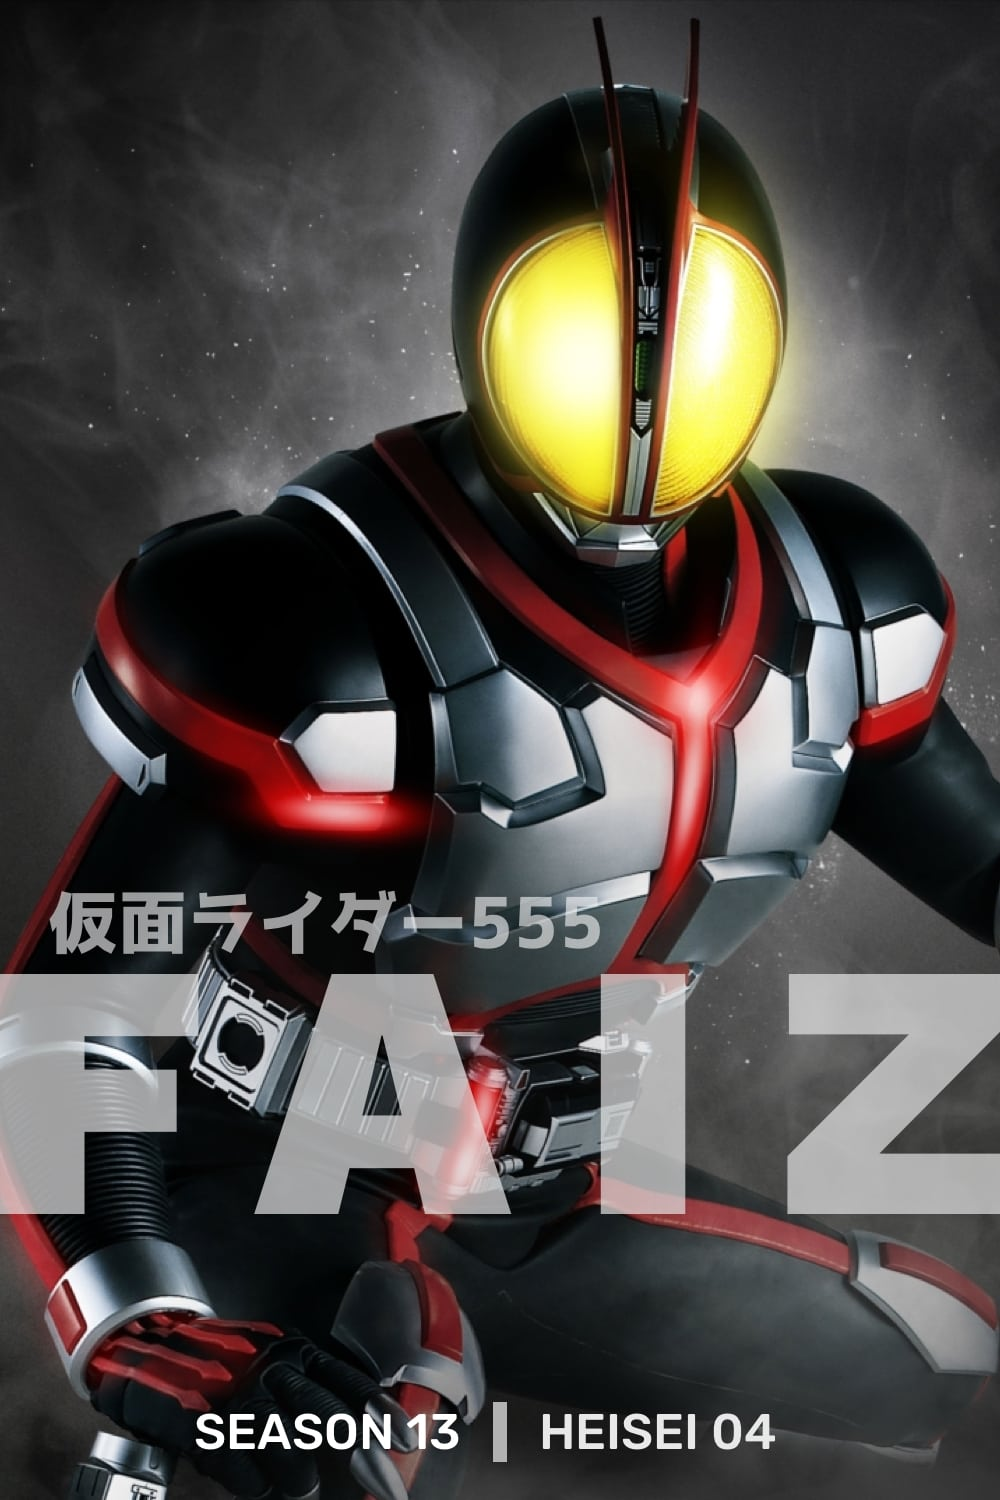 Kamen Rider - Season 21 Episode 1 : Medal, Underwear, Mysterious Arm Season 13